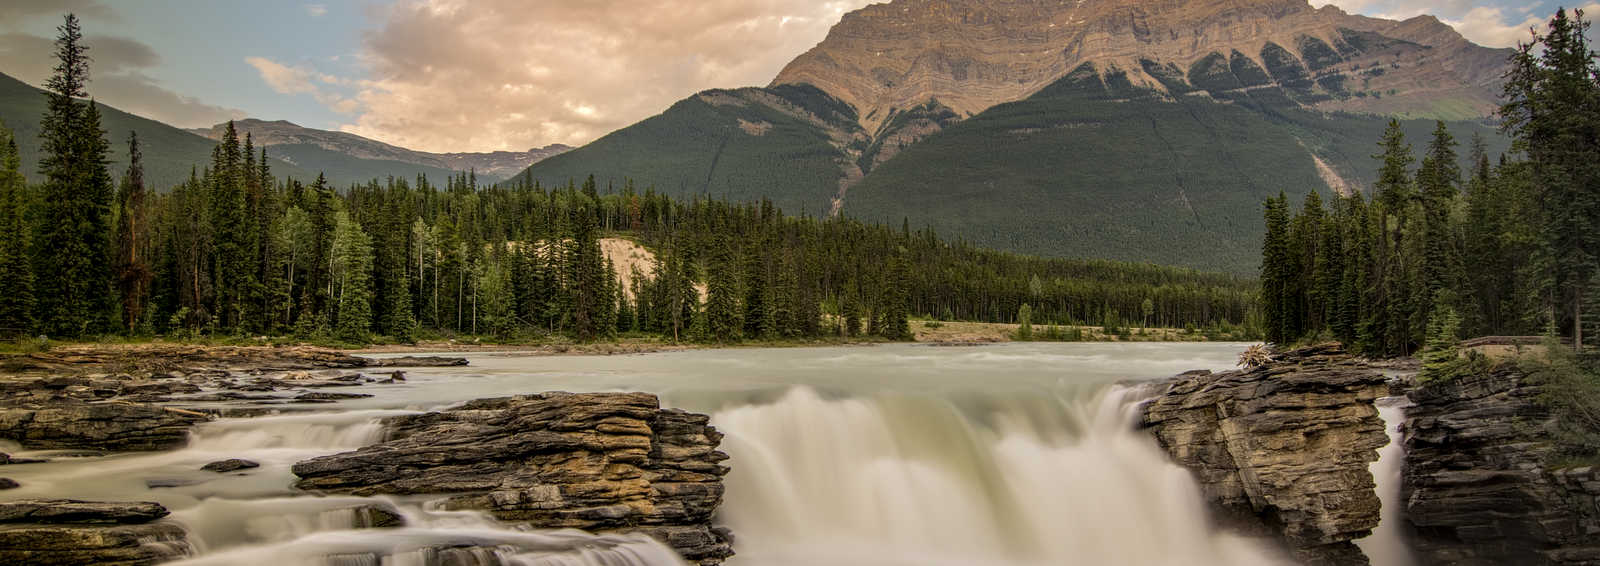 Long exposure of the beautiful Athabasca Falls with towering sunlit of Mount Kerkeslin in the background